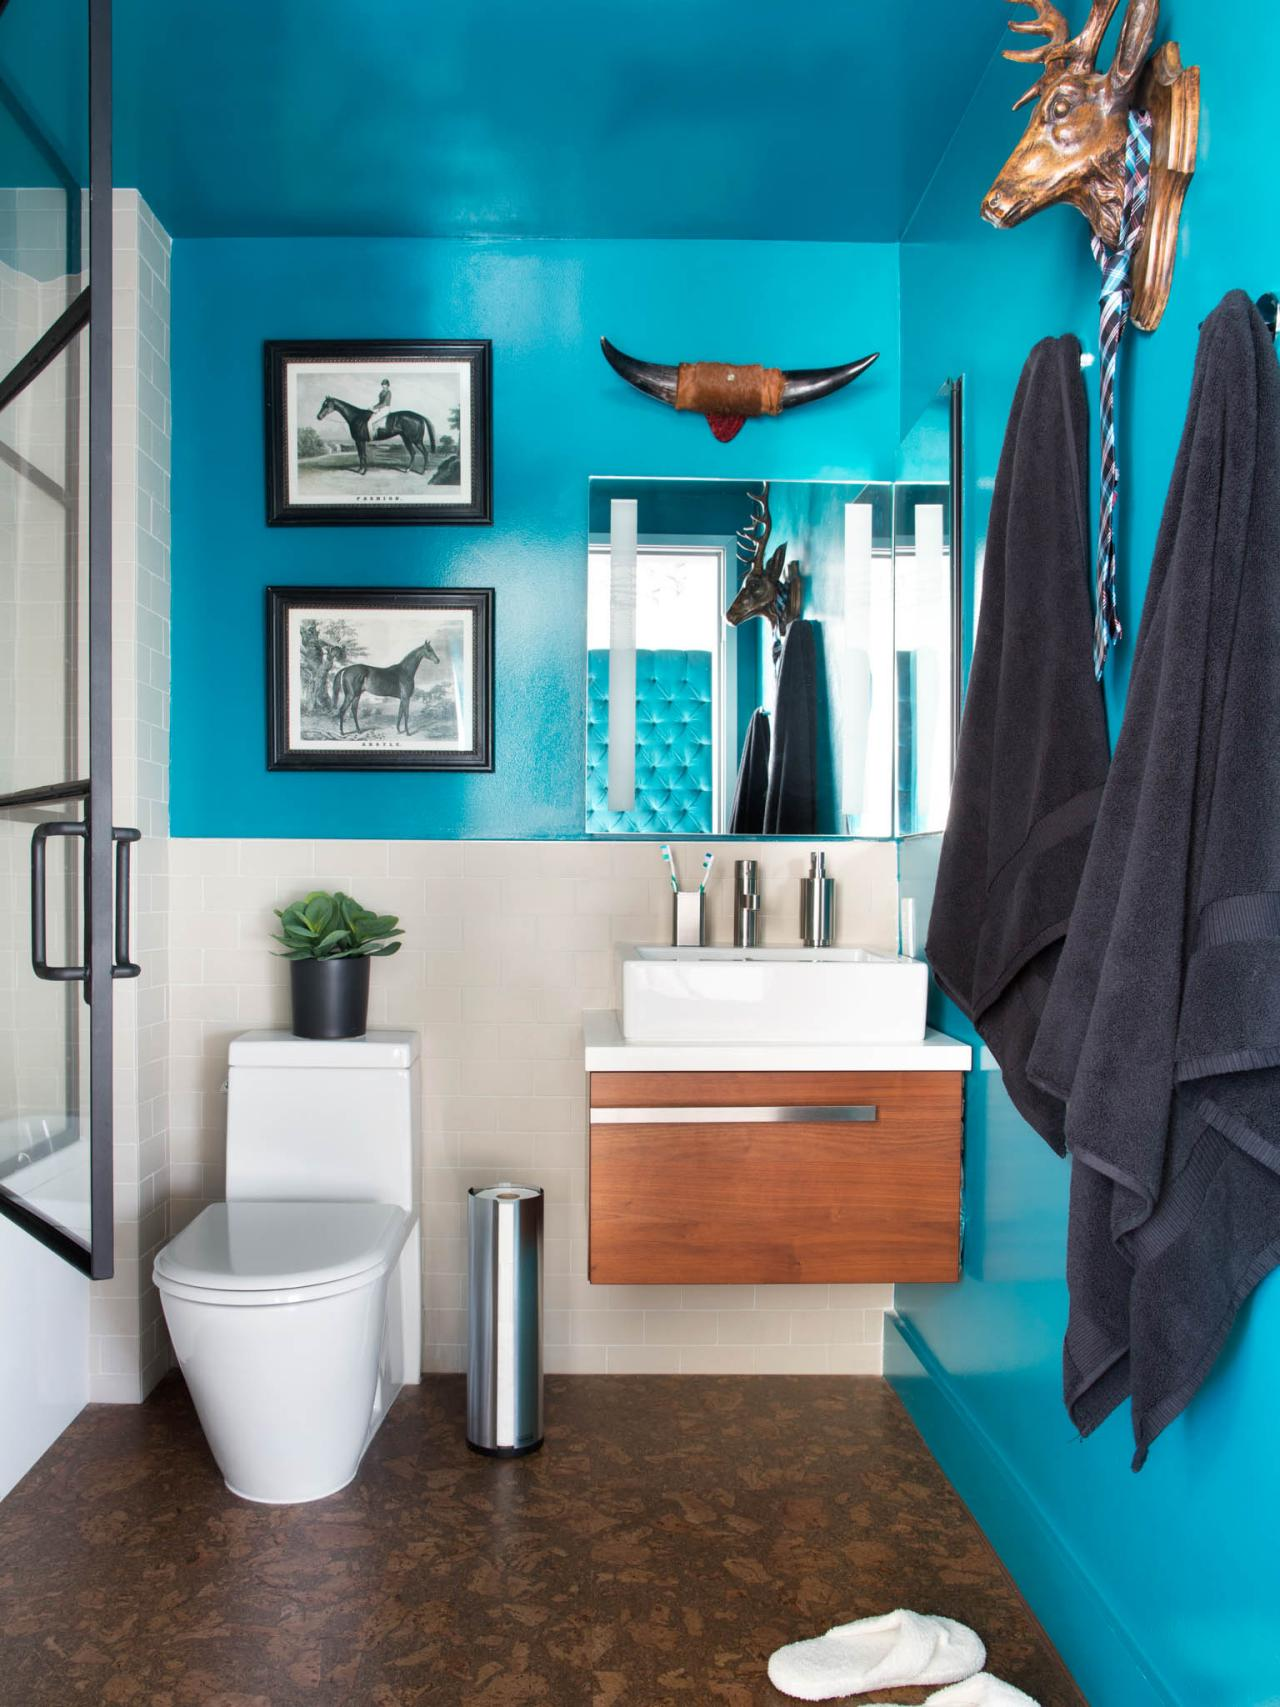 10 Paint Color Ideas for Small Bathrooms  DIY Network